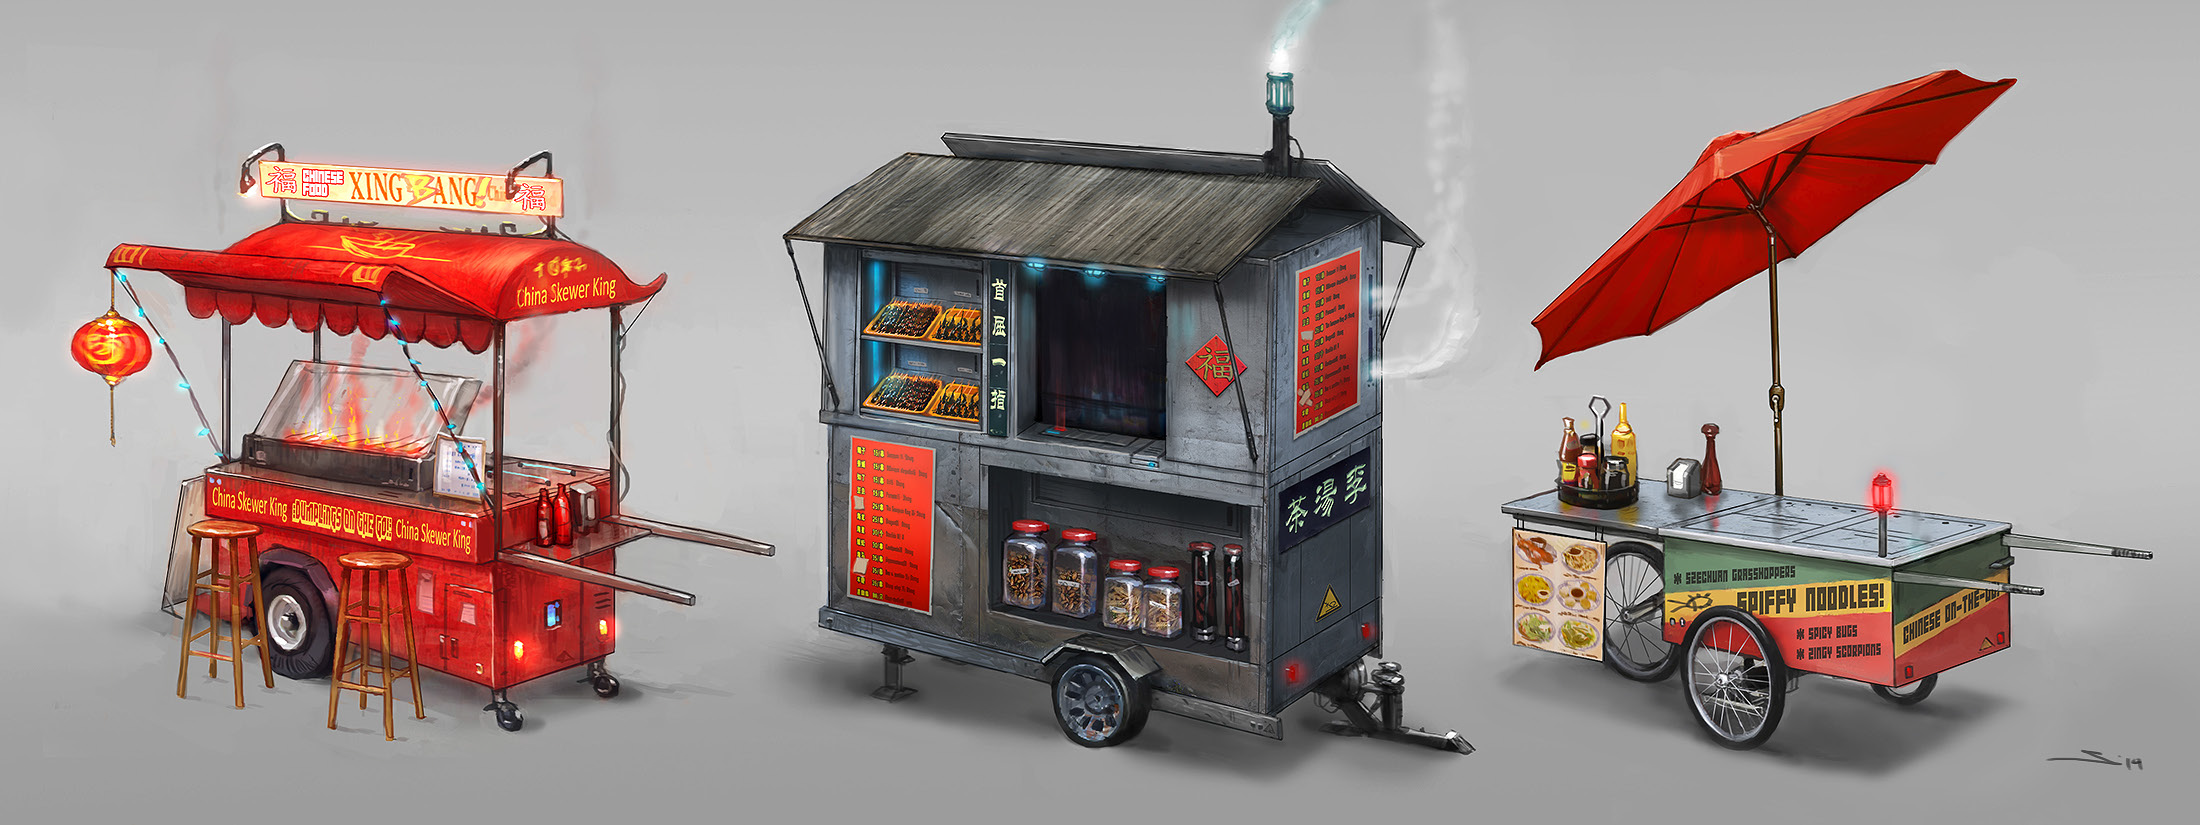 Art Of Dreamfall Chapters Reborn Chinese Stalls And Food Carts Food Cart Design Chinese New Year Food Food Cart